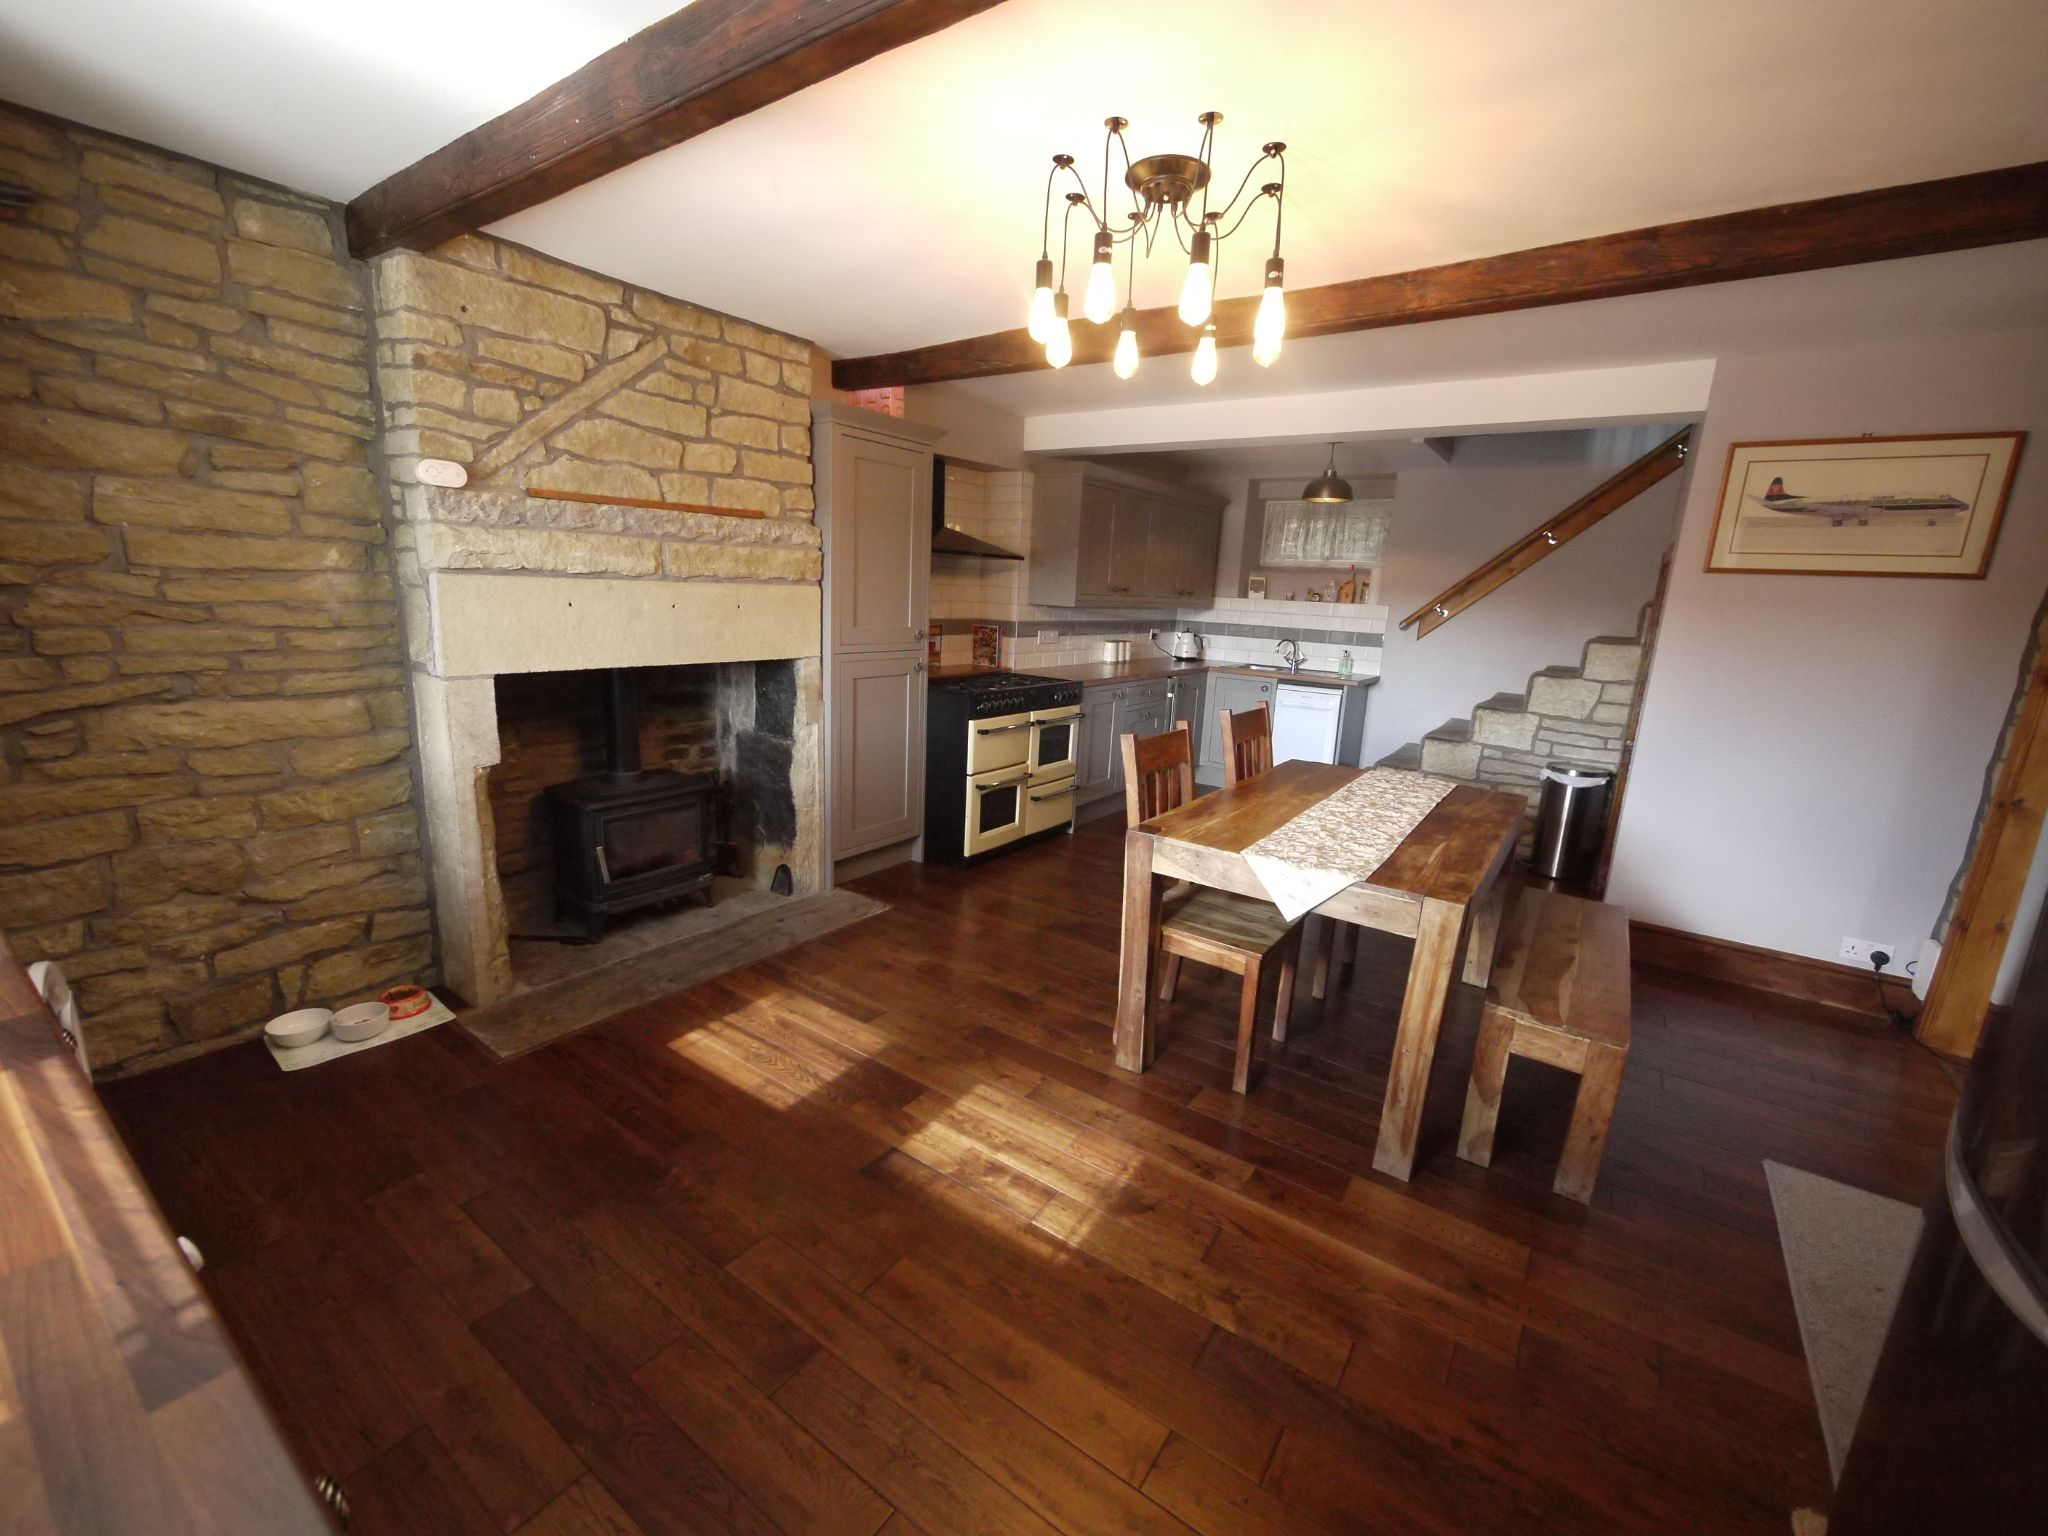 3 bedroom cottage house For Sale in Halifax - Dining Kitchen.